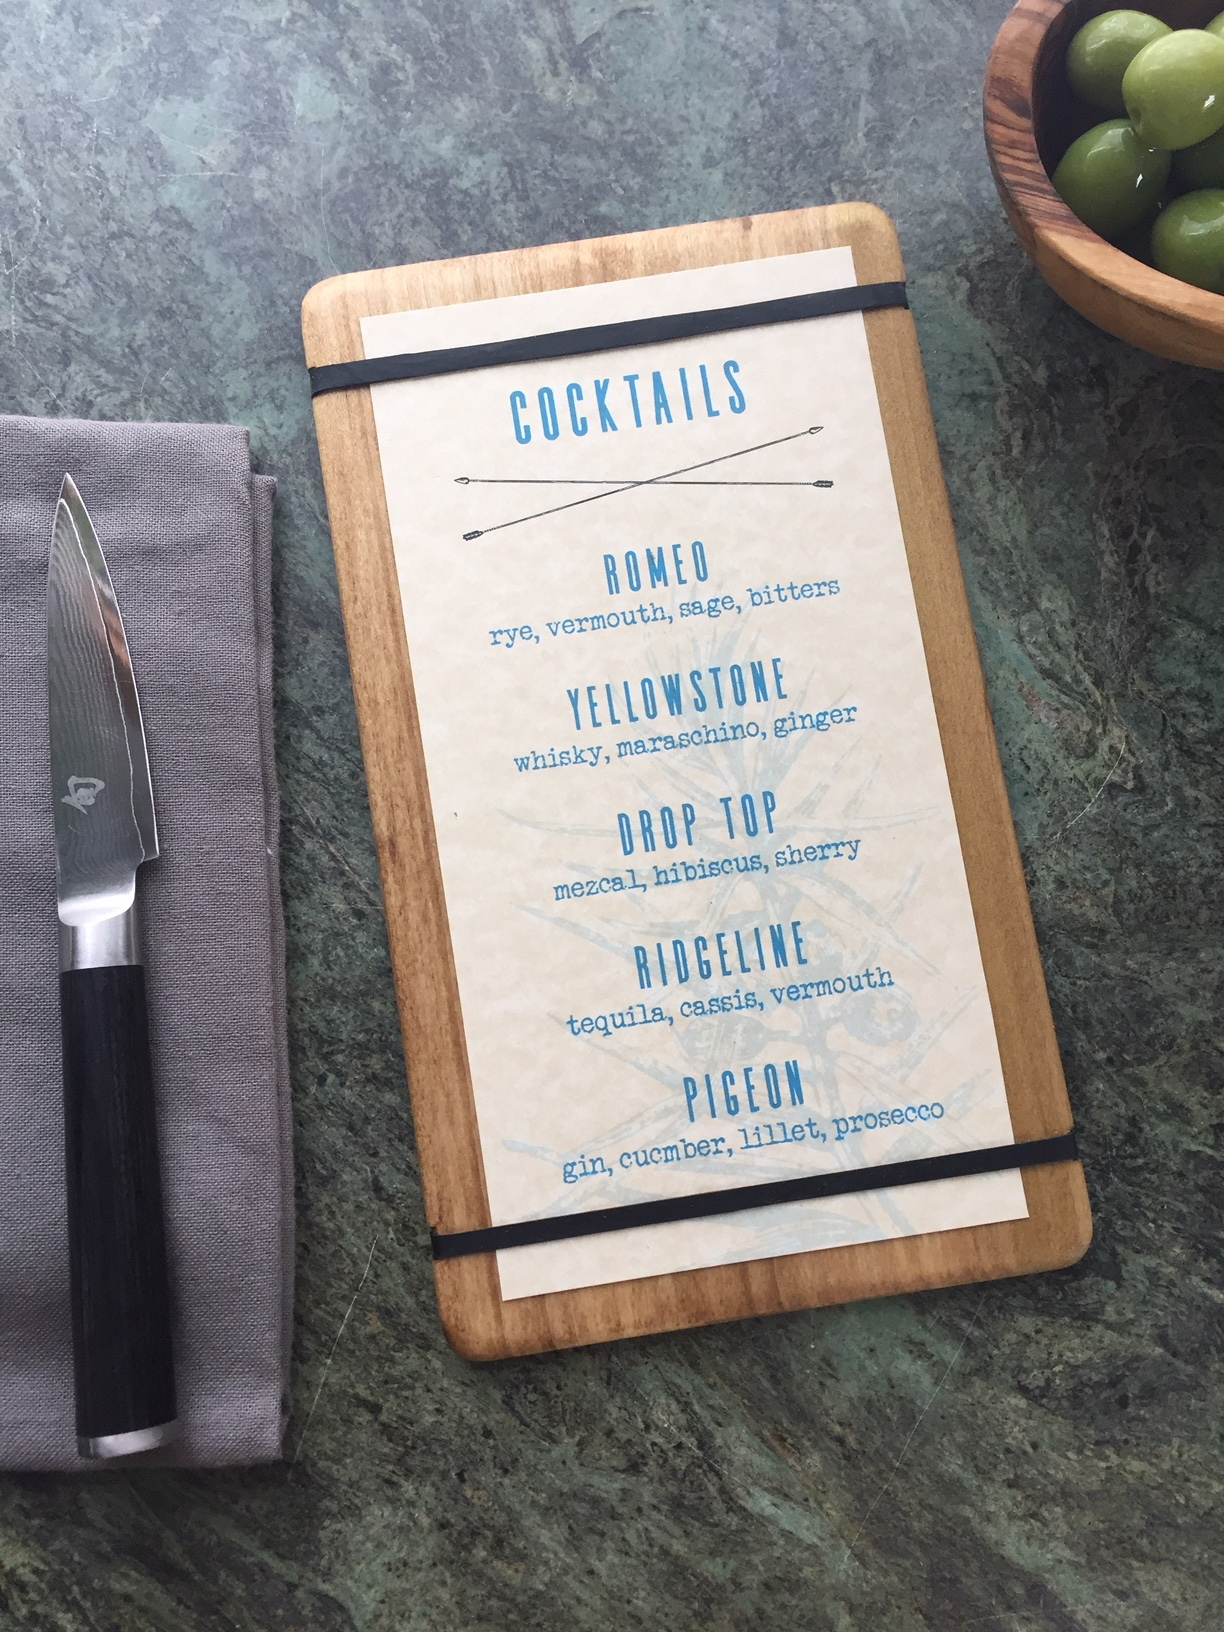 Rubber Band Menu Board